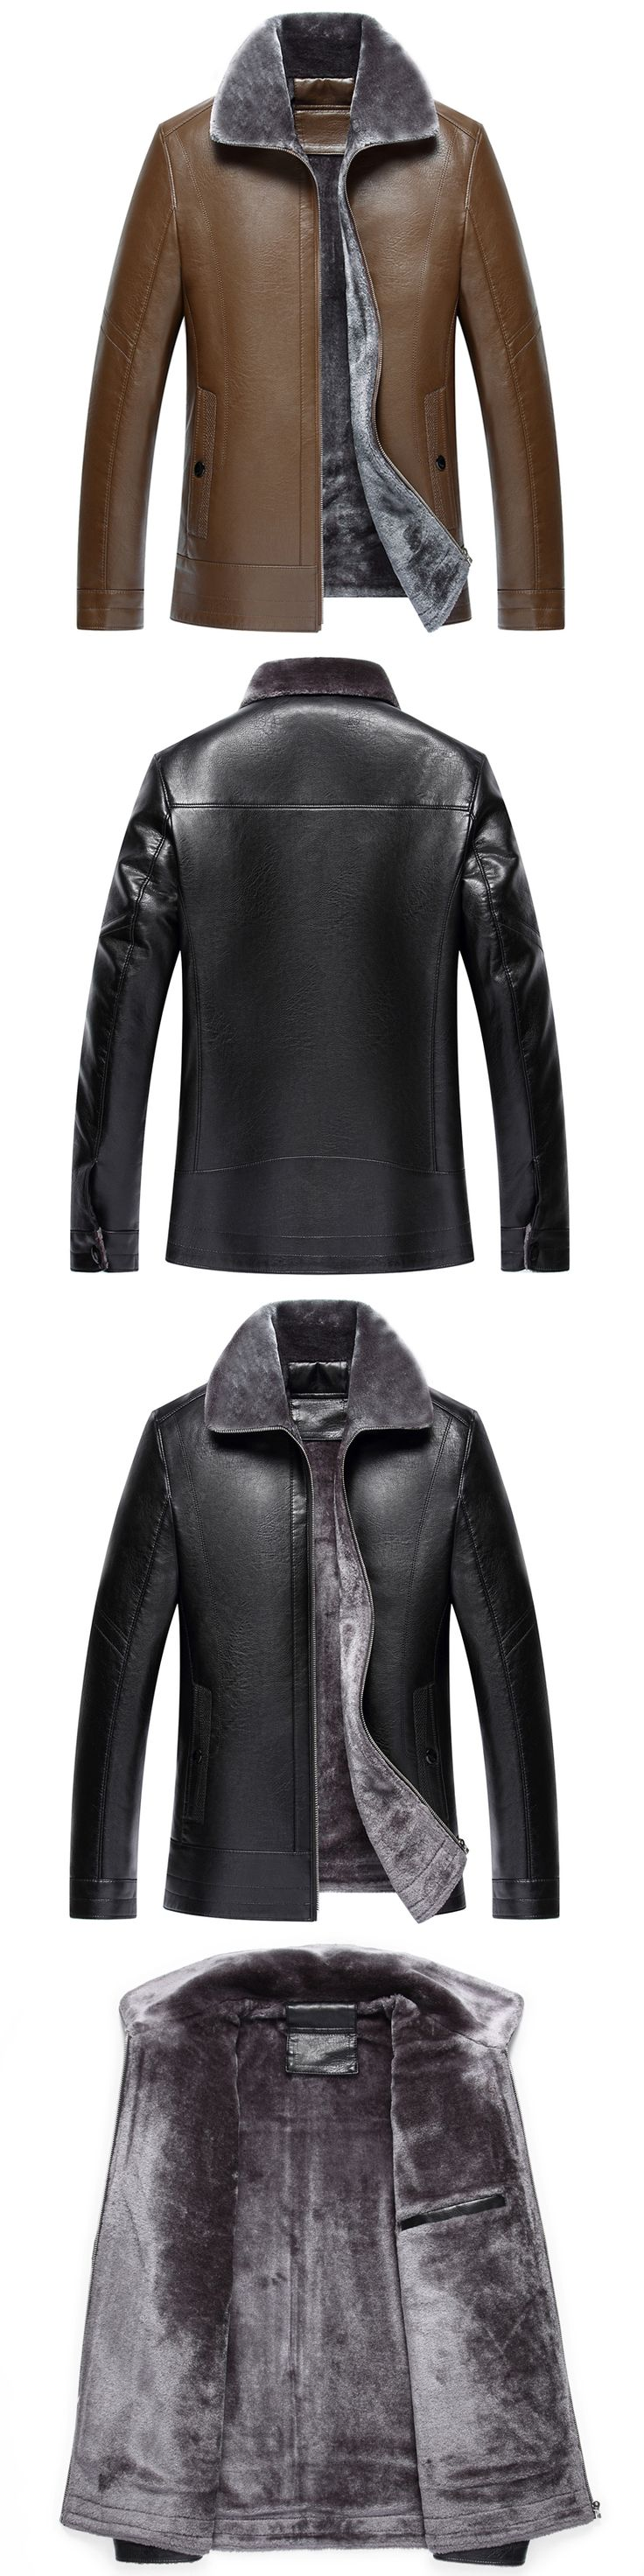 Free Shipping Hot Sale Winter Thick Leather Garment Casual flocking Leather Jacket Men's Clothing Leather Jacket Men